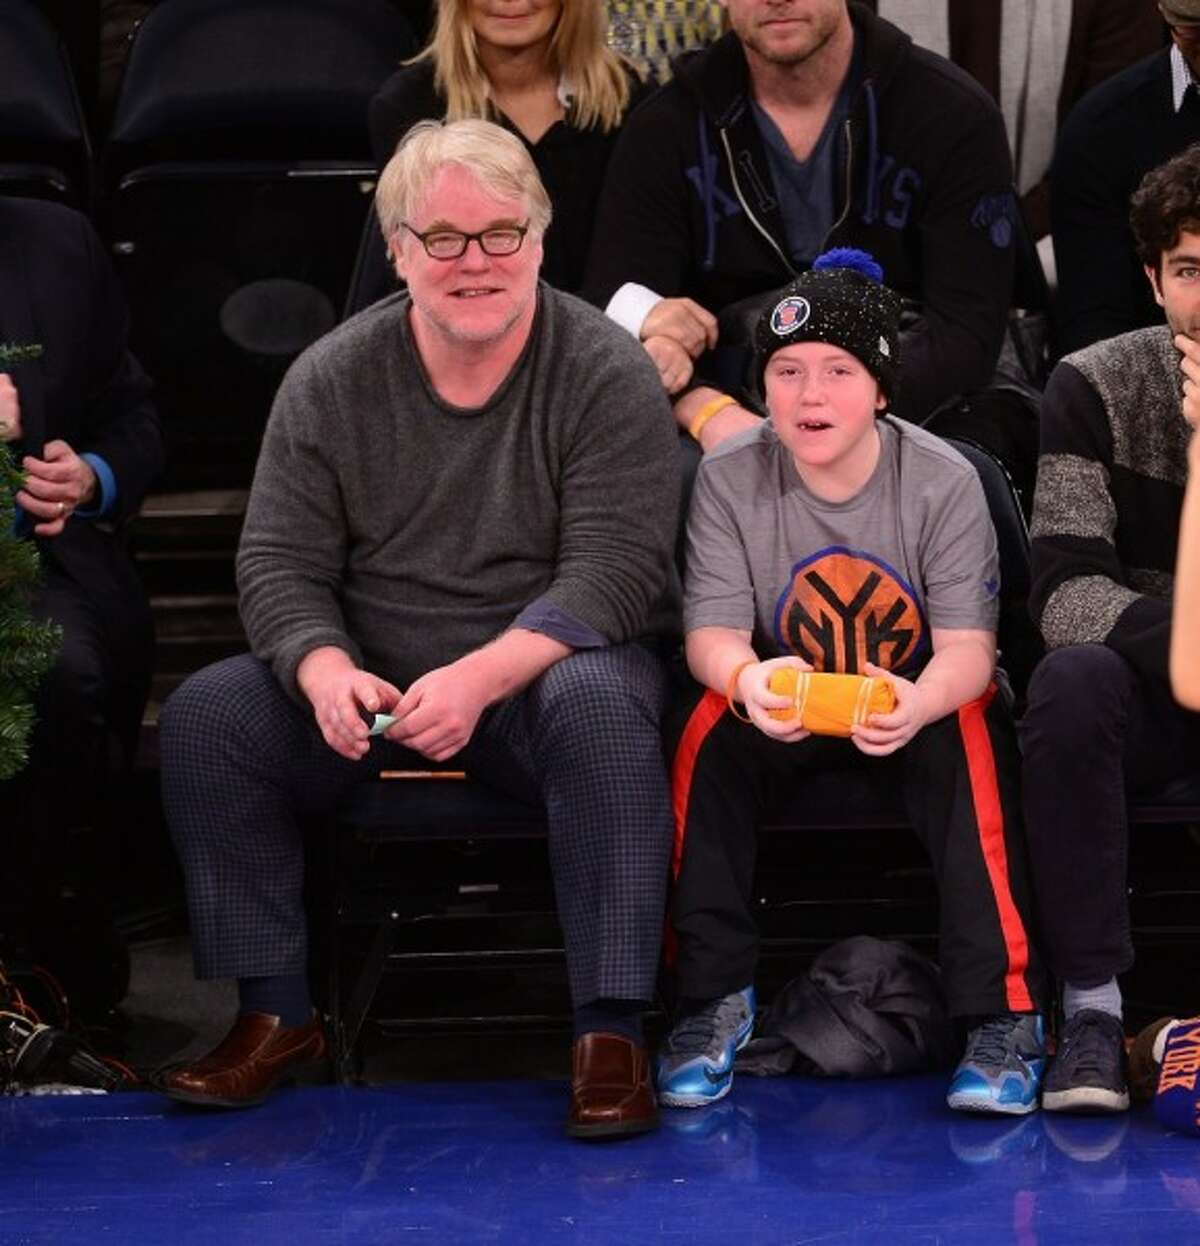 According to the New York Post, Philip Seymour Hoffman